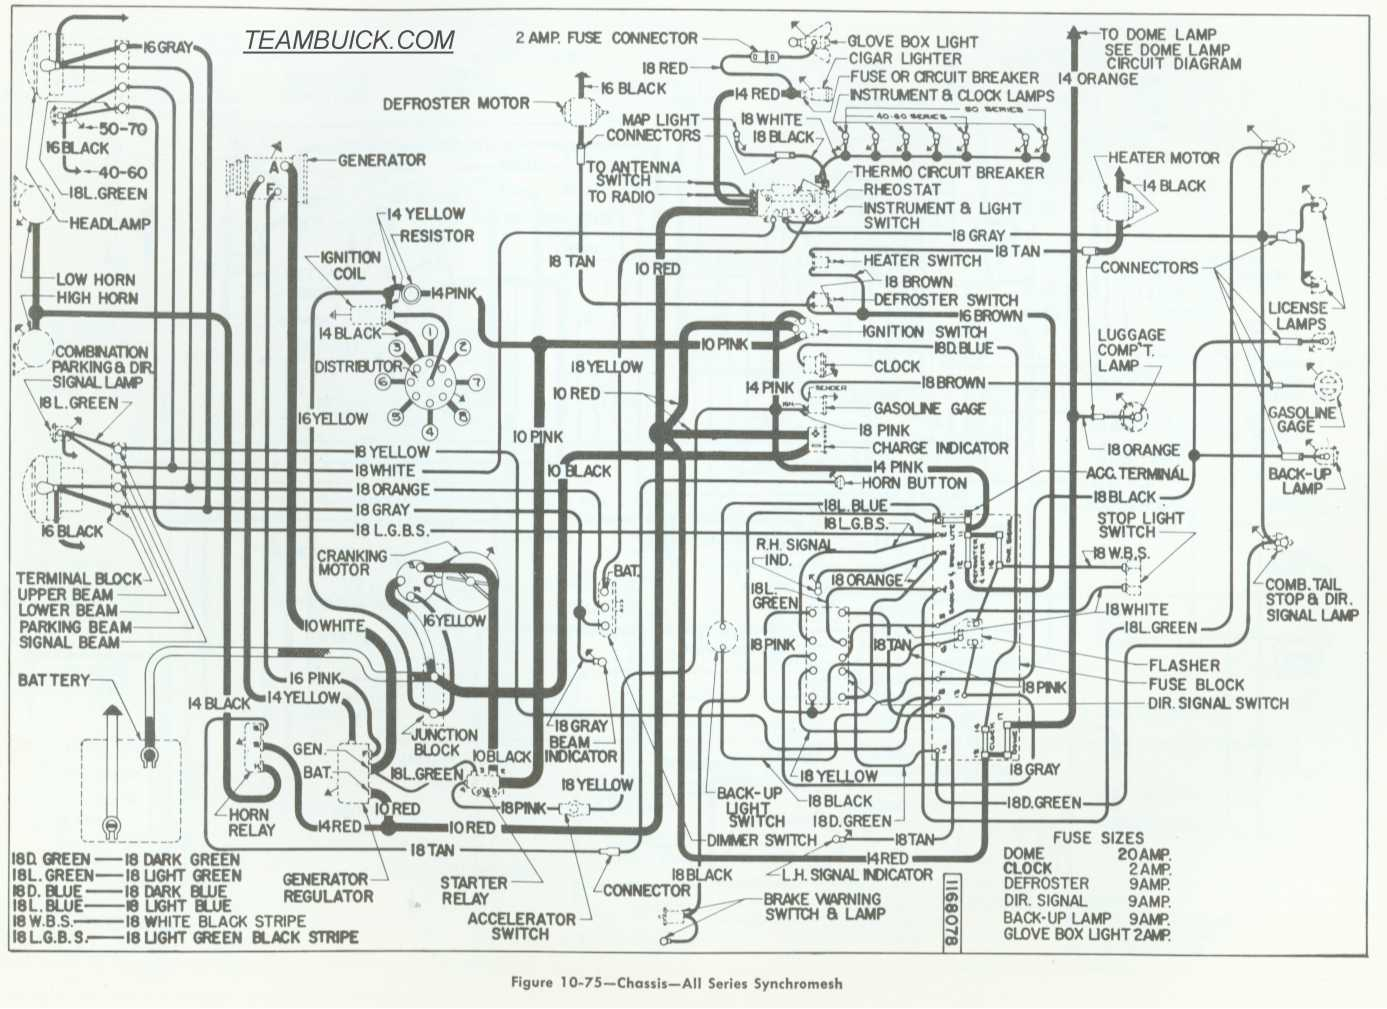 75 Buick Wiring Diagram Will Be A Thing 1998 Century Radio 1955 Diagrams Rh Teambuick Com Regal Stereo